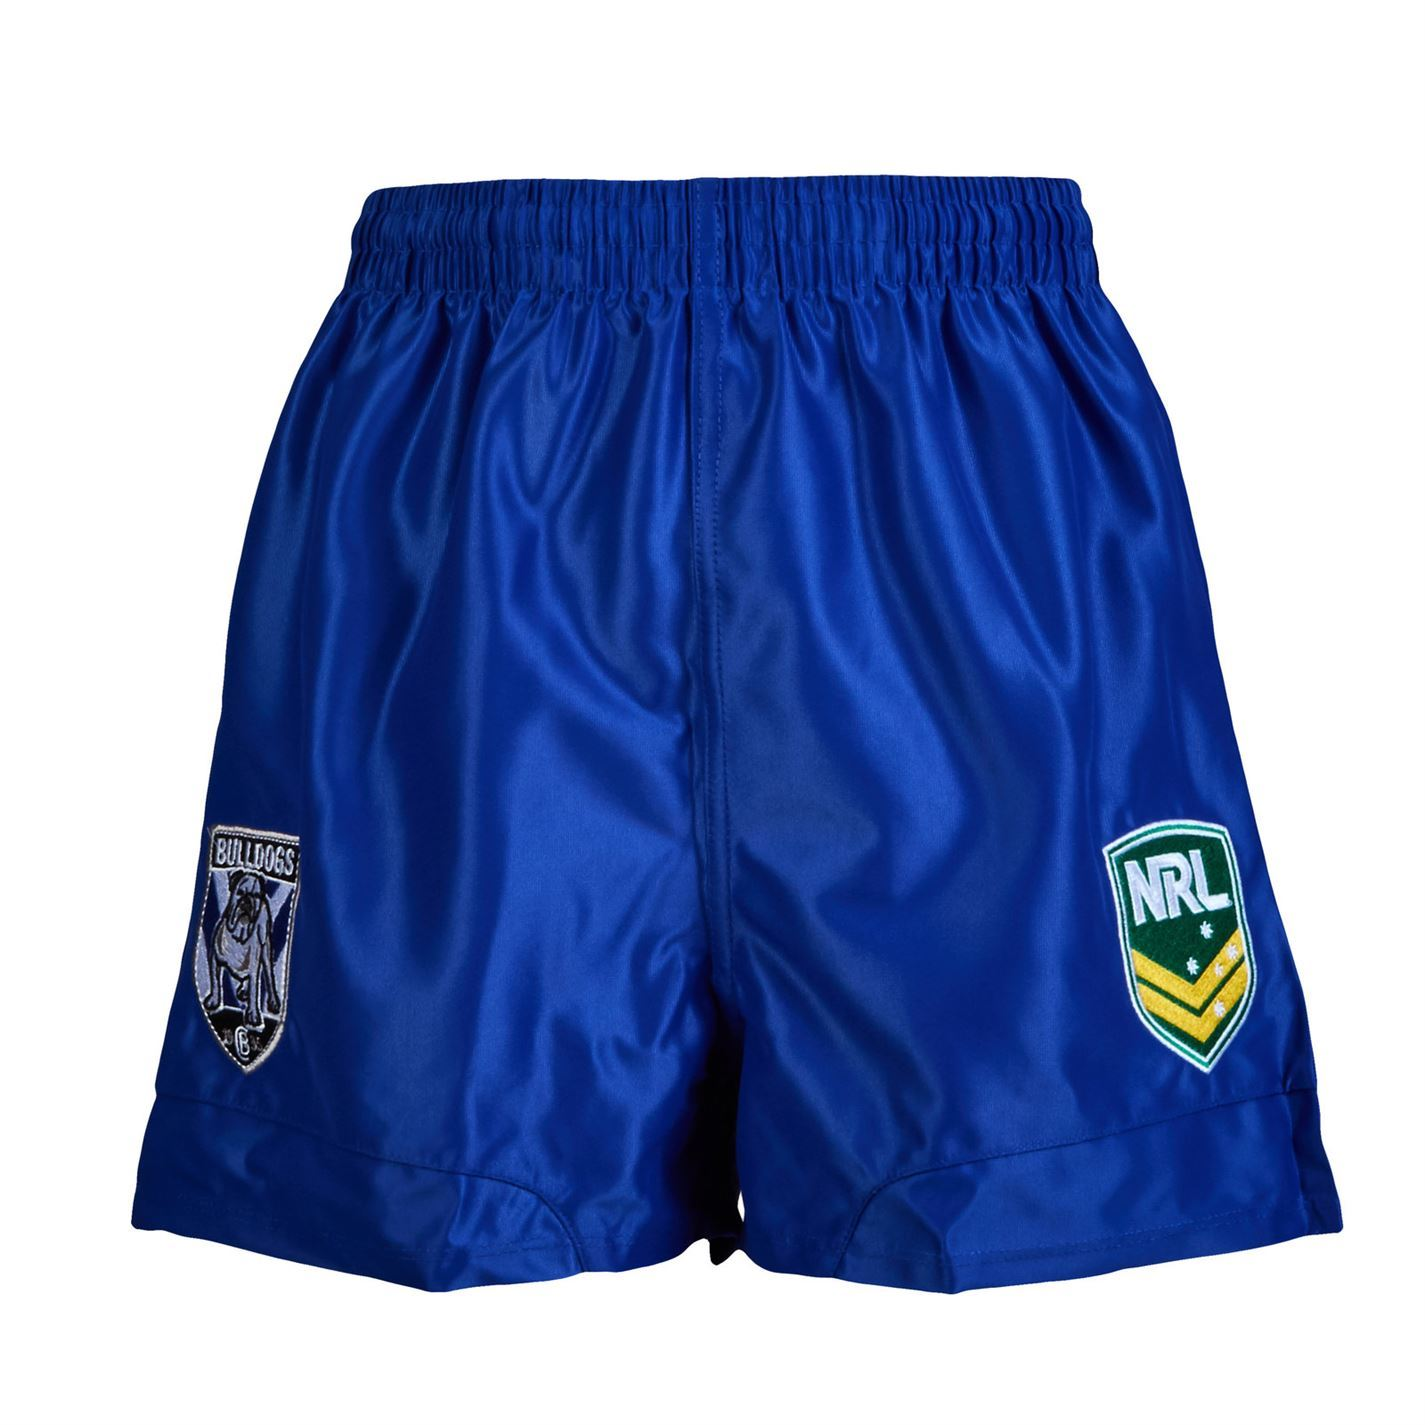 NRL-Supporter-Shorts-Juniors-Rugby-League-Storm-Bulldog-Sea-Eagles-Eels-Roosters thumbnail 4